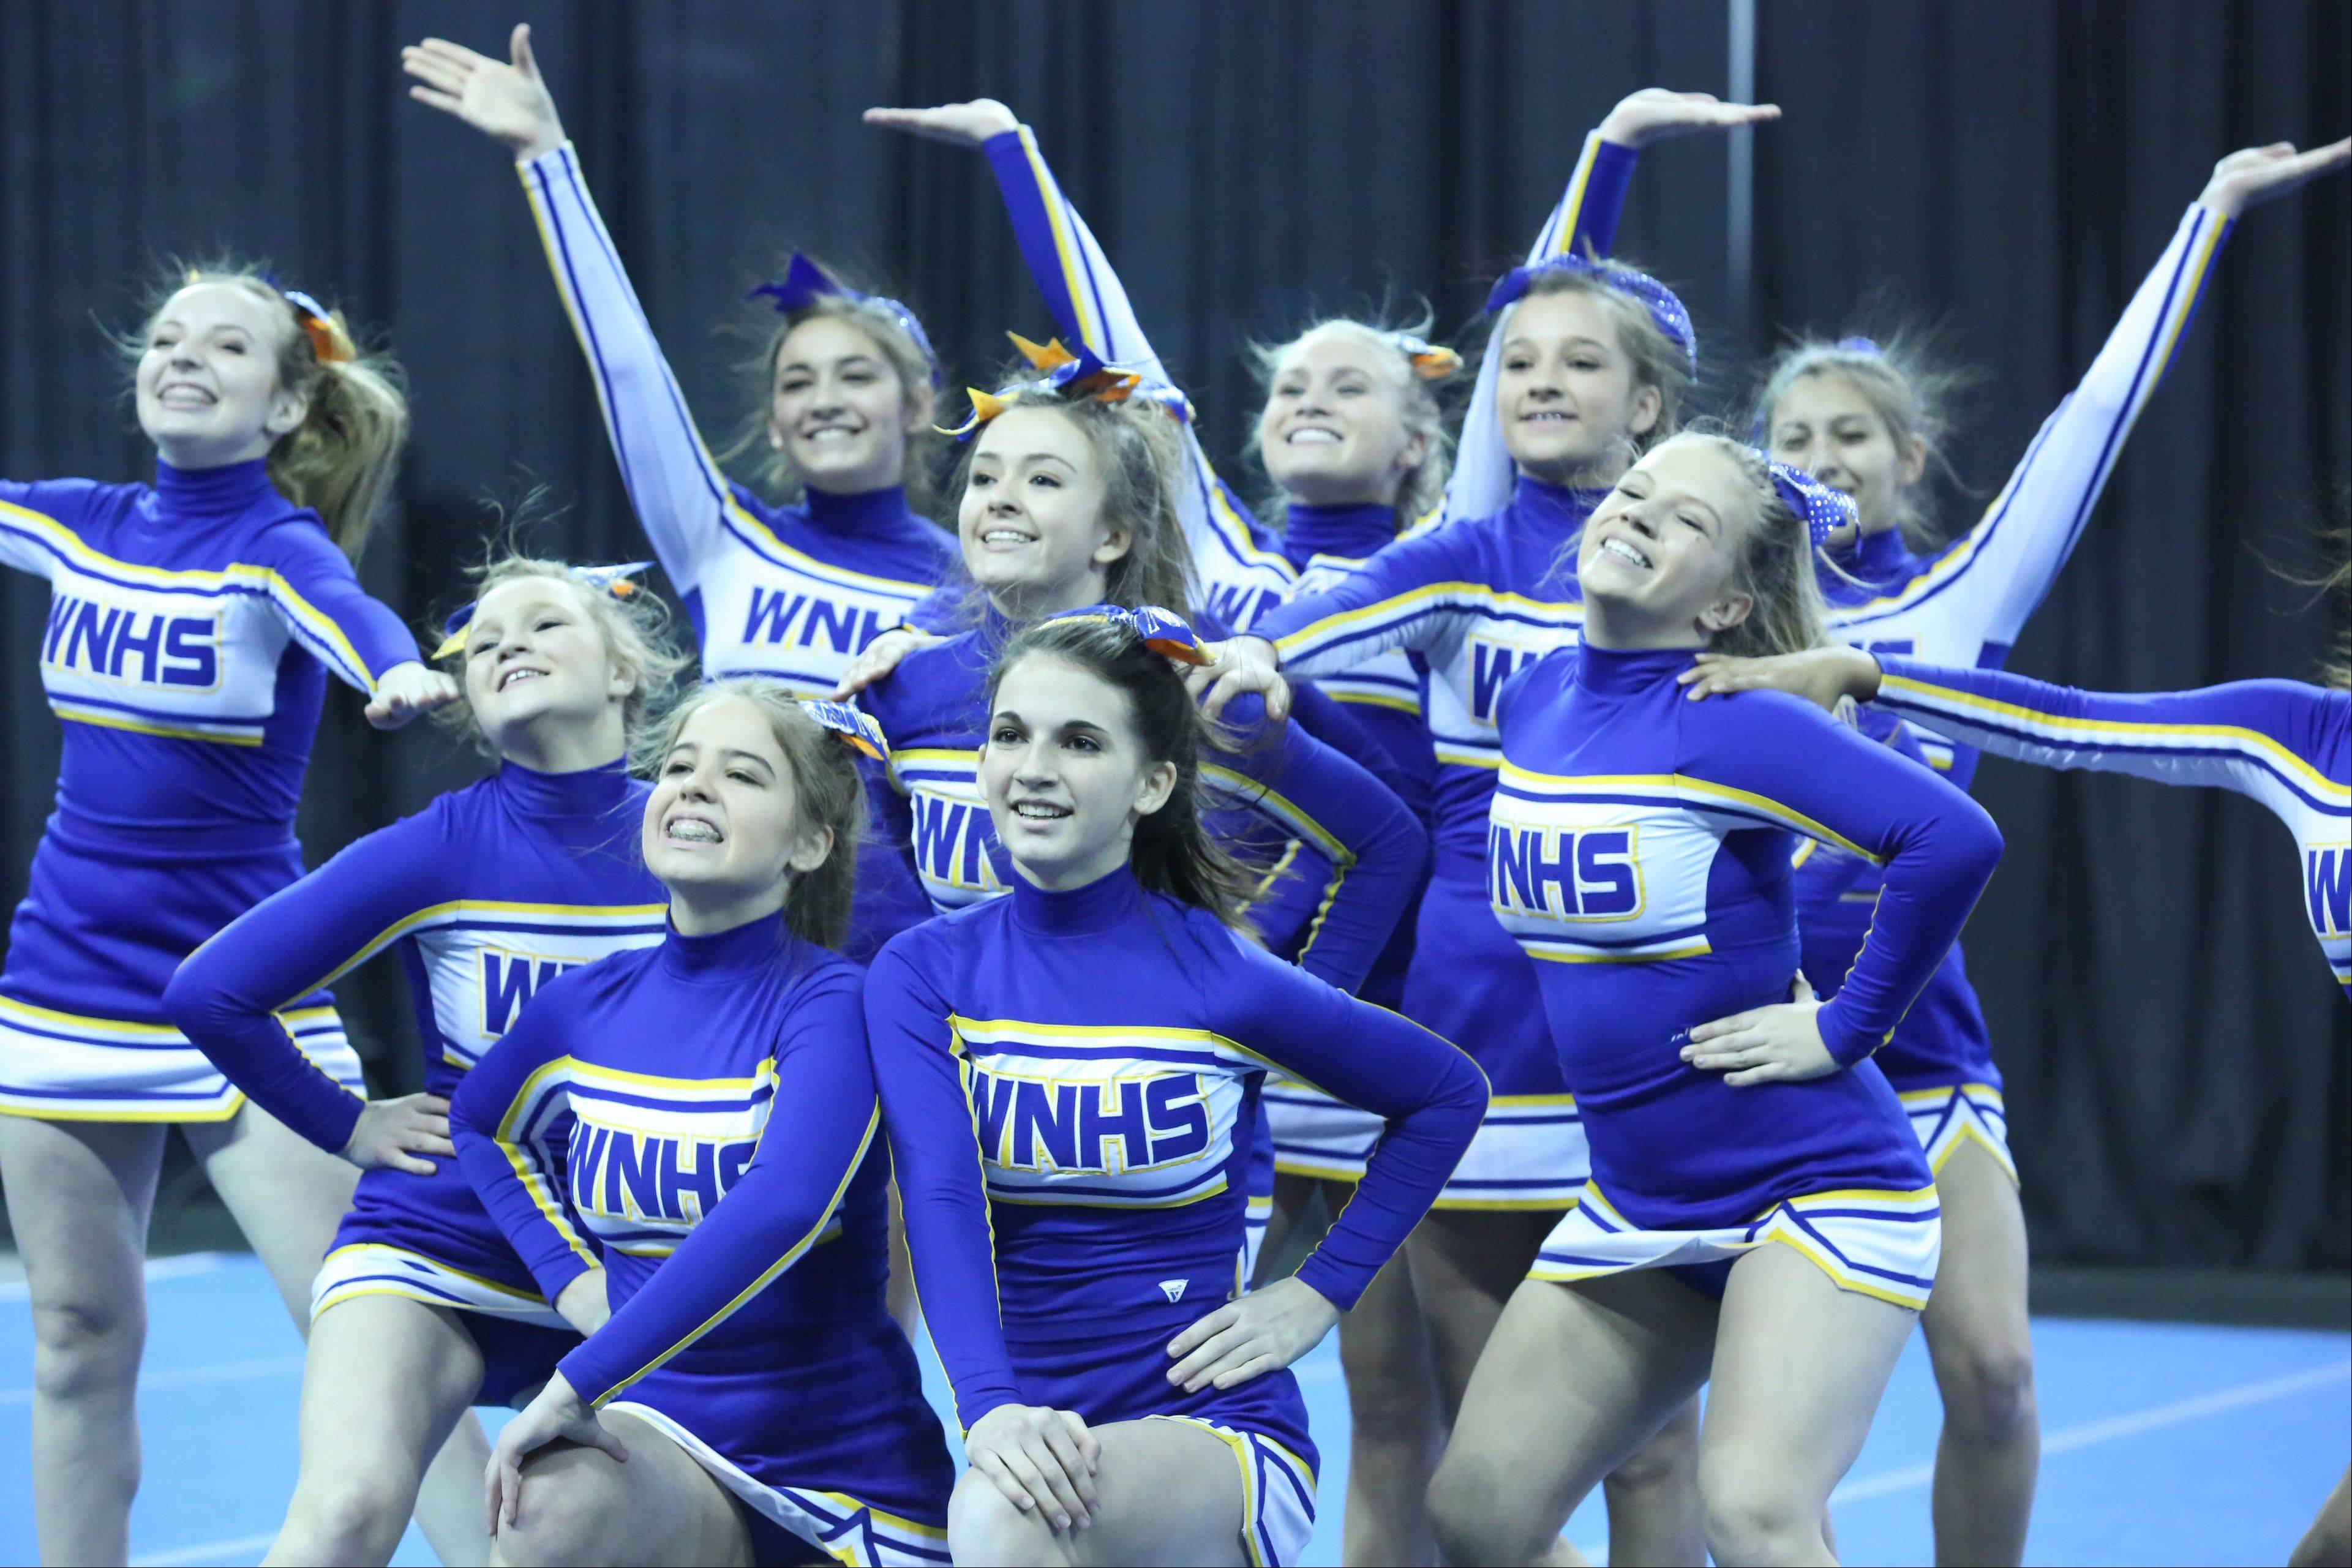 The Wheaton North High School cheer team competes in the IHSA Winter Meltdown Cheerleading and Dance Competition at Sears Centre Arena on Saturday in Hoffman Estates.